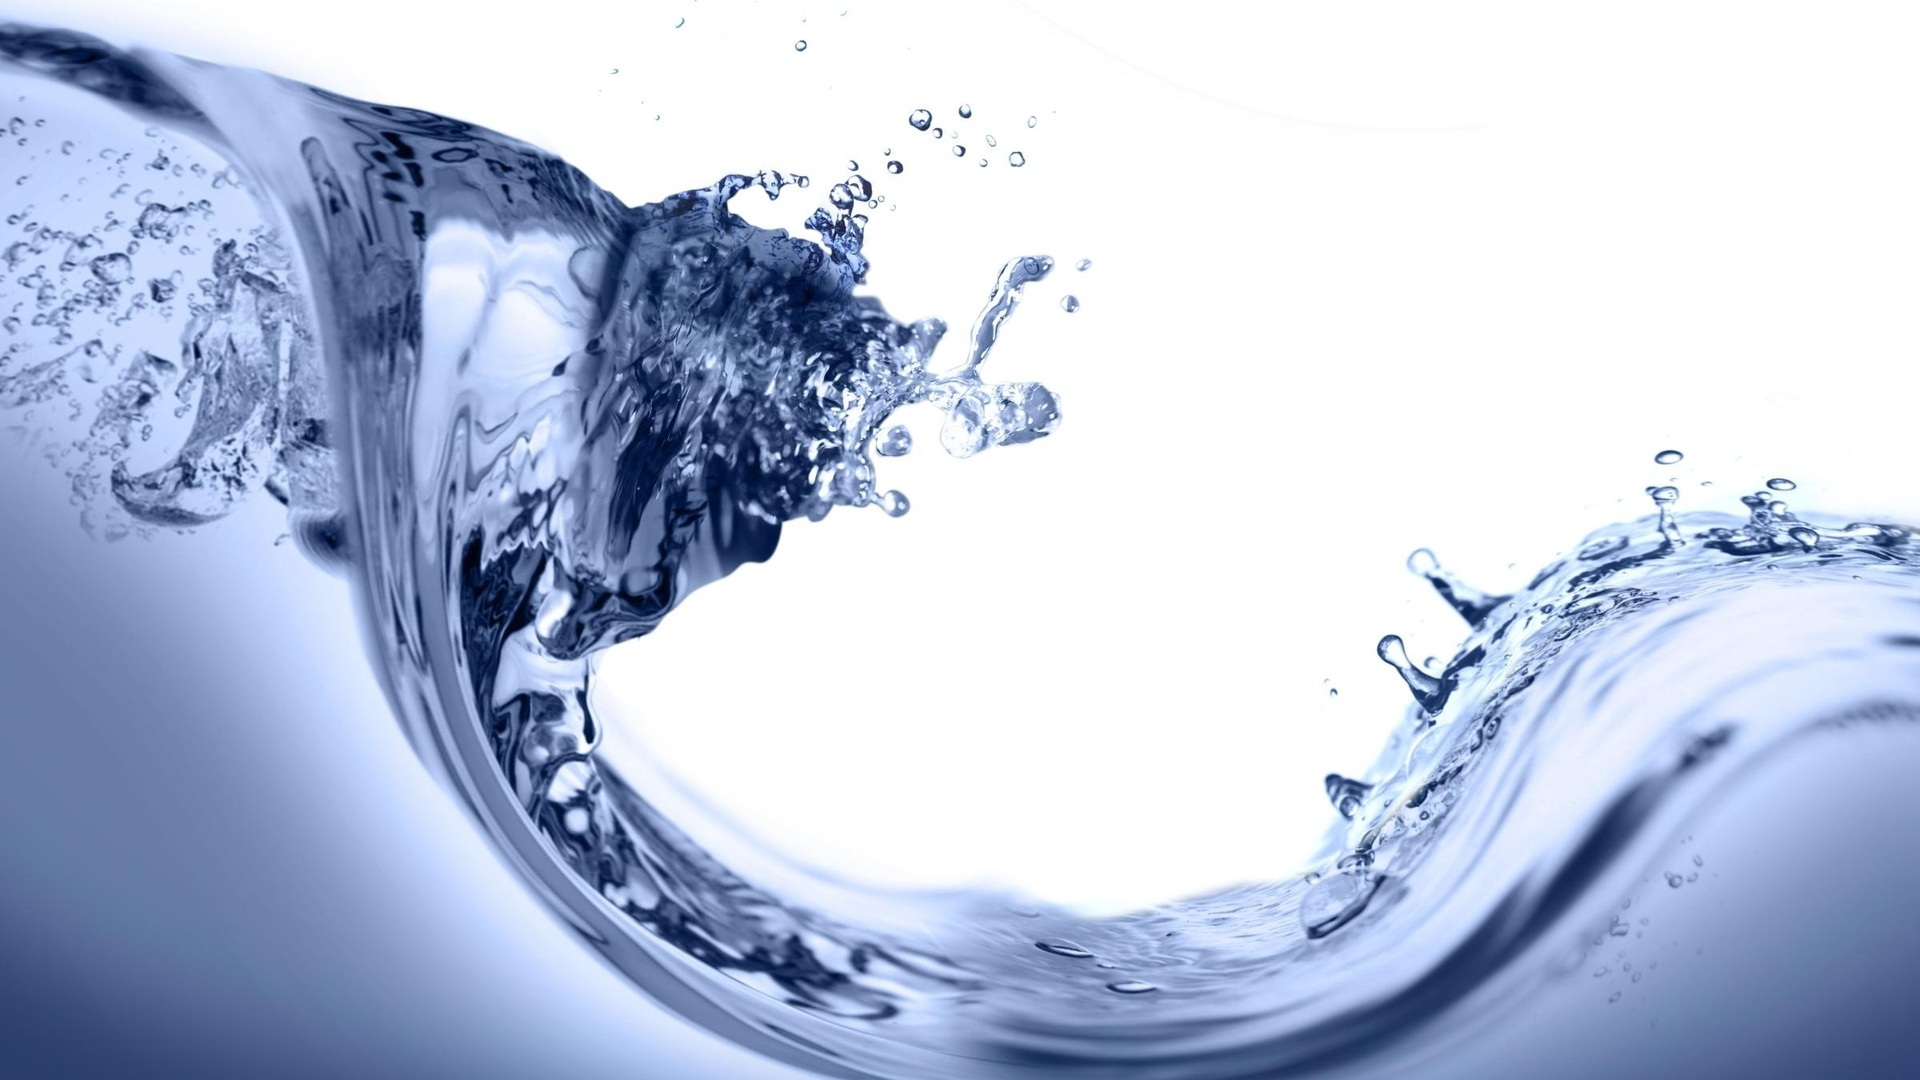 Splash-Water-Background.jpg